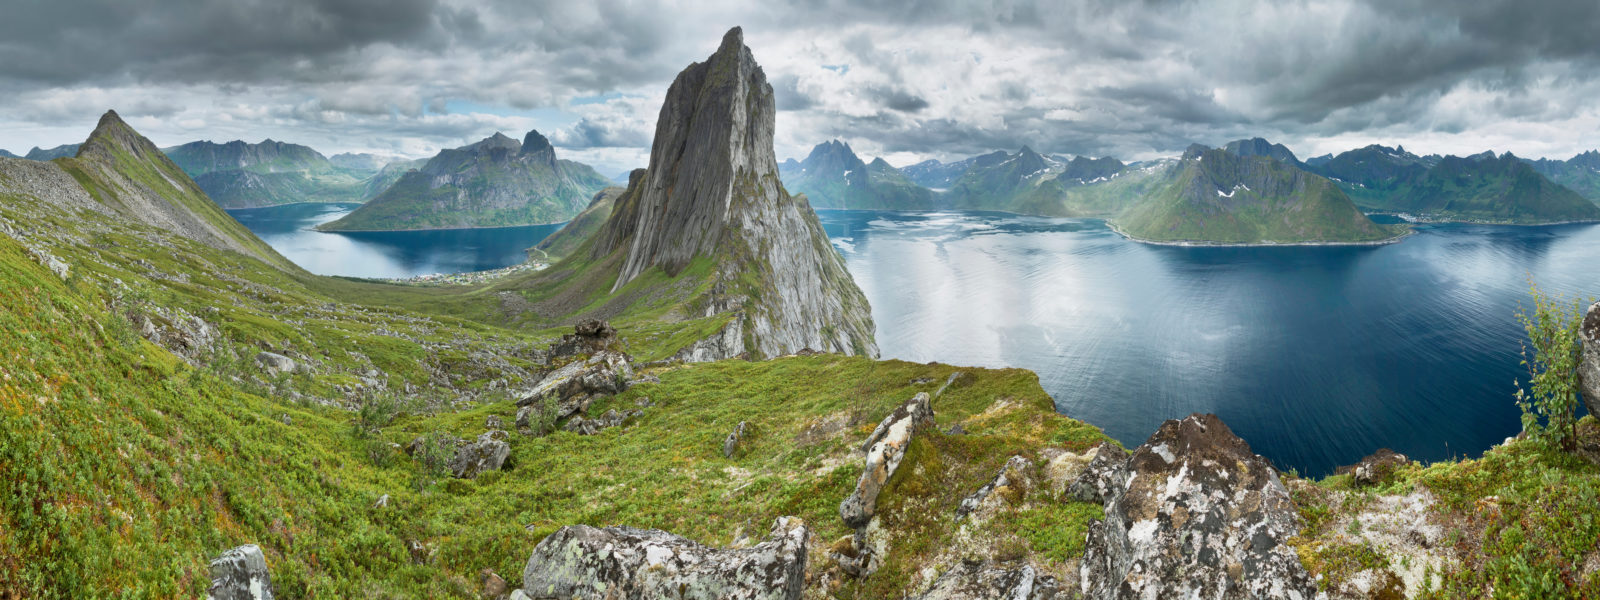 Norway Travel Through Pictures